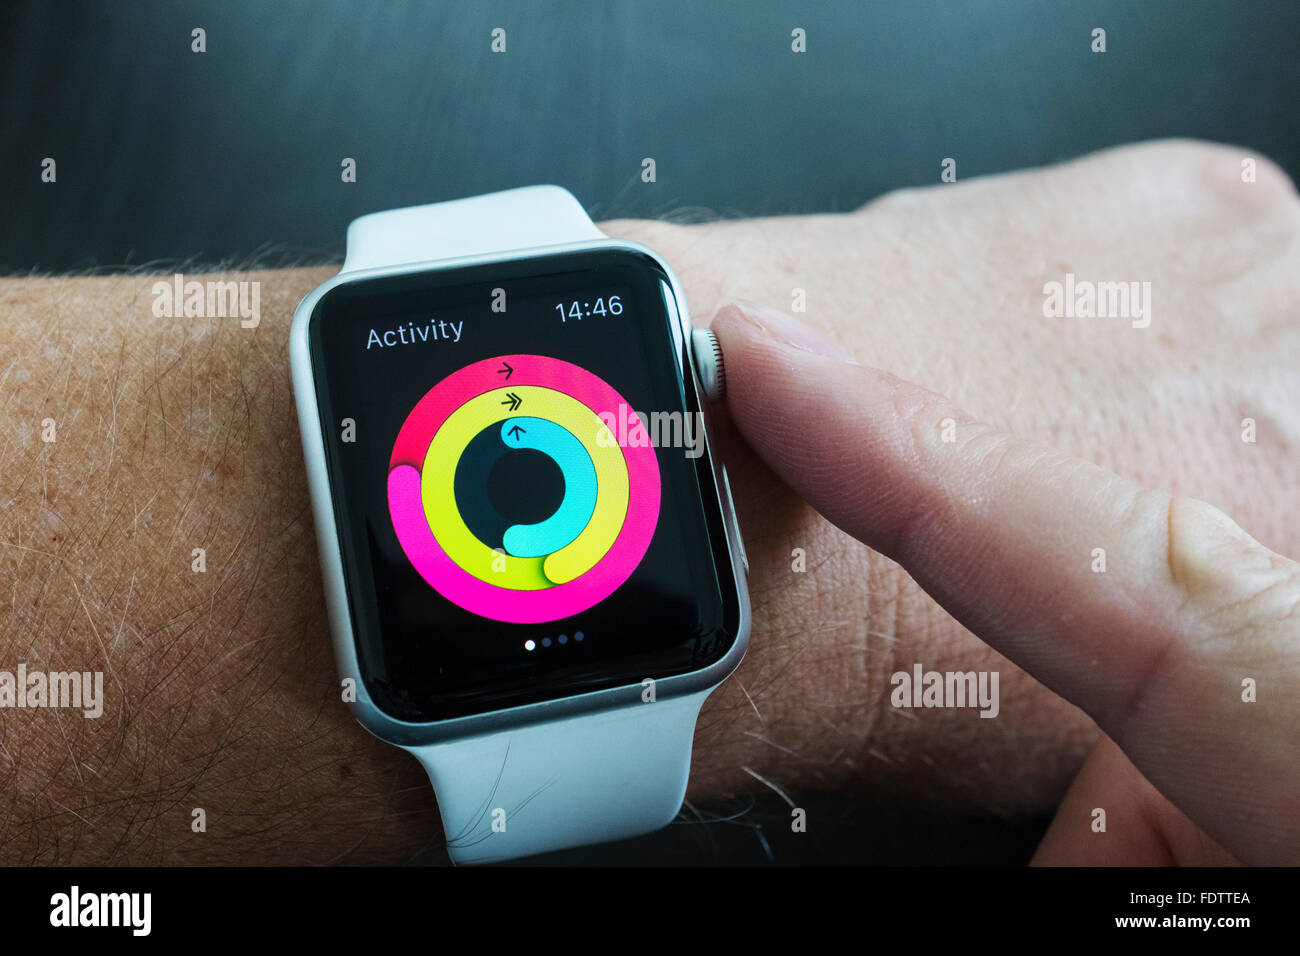 Detail of health app measuring daily activity on an Apple Watch - Stock Image